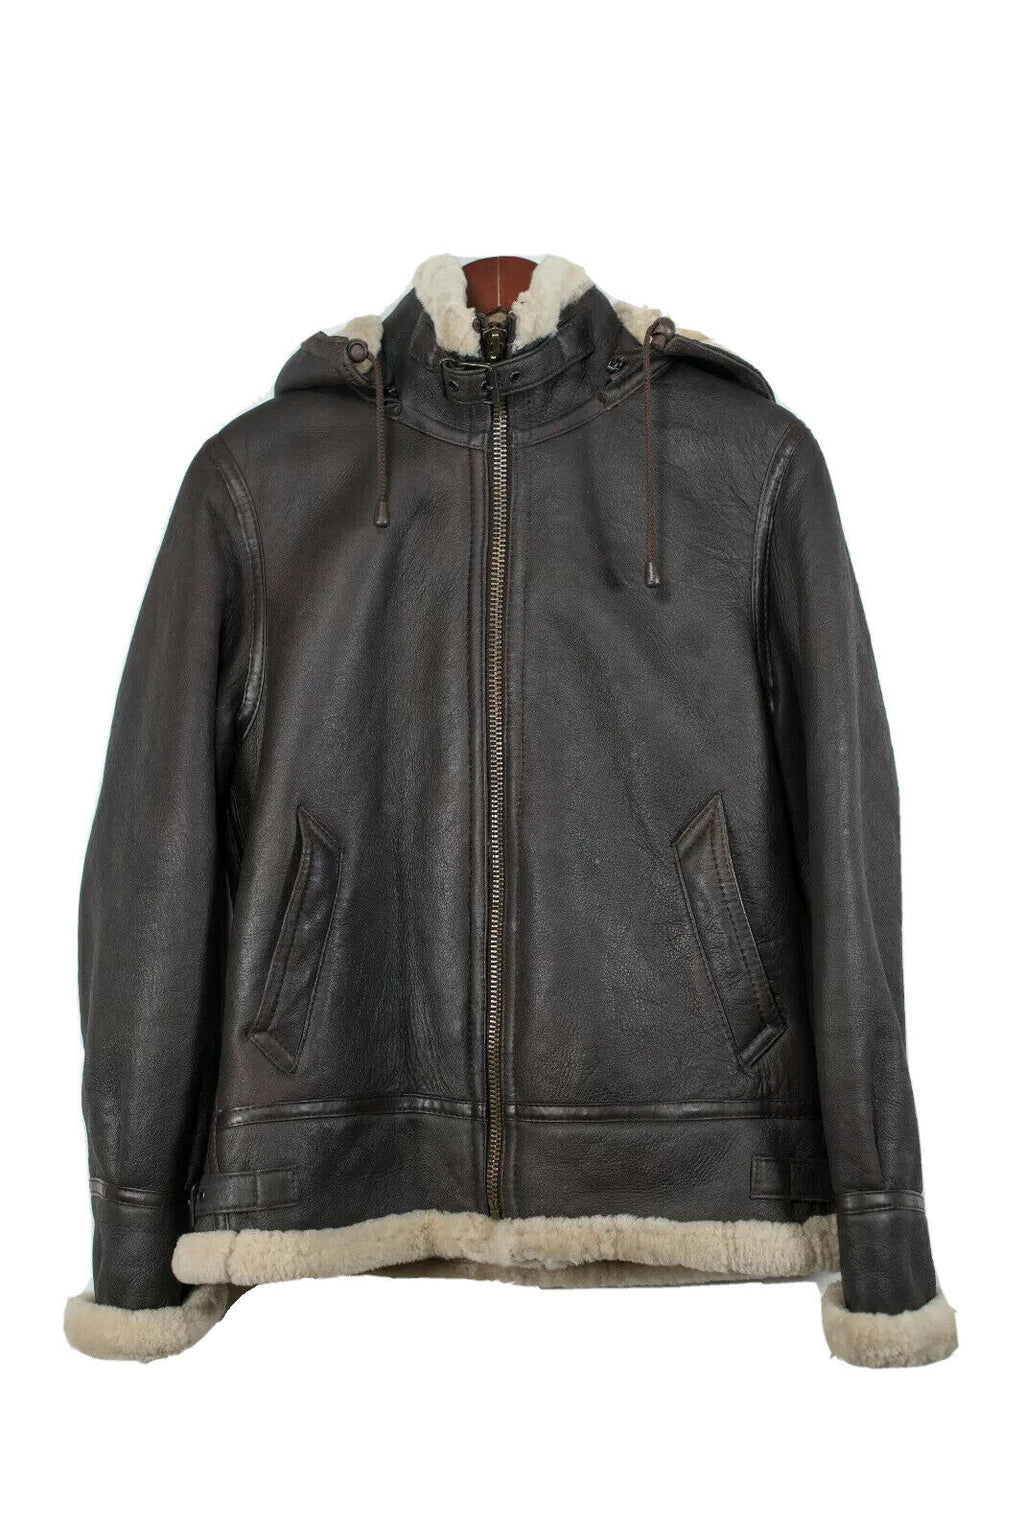 A&S Selections Men's Small Brown Shearling Leather Aviator Jacket